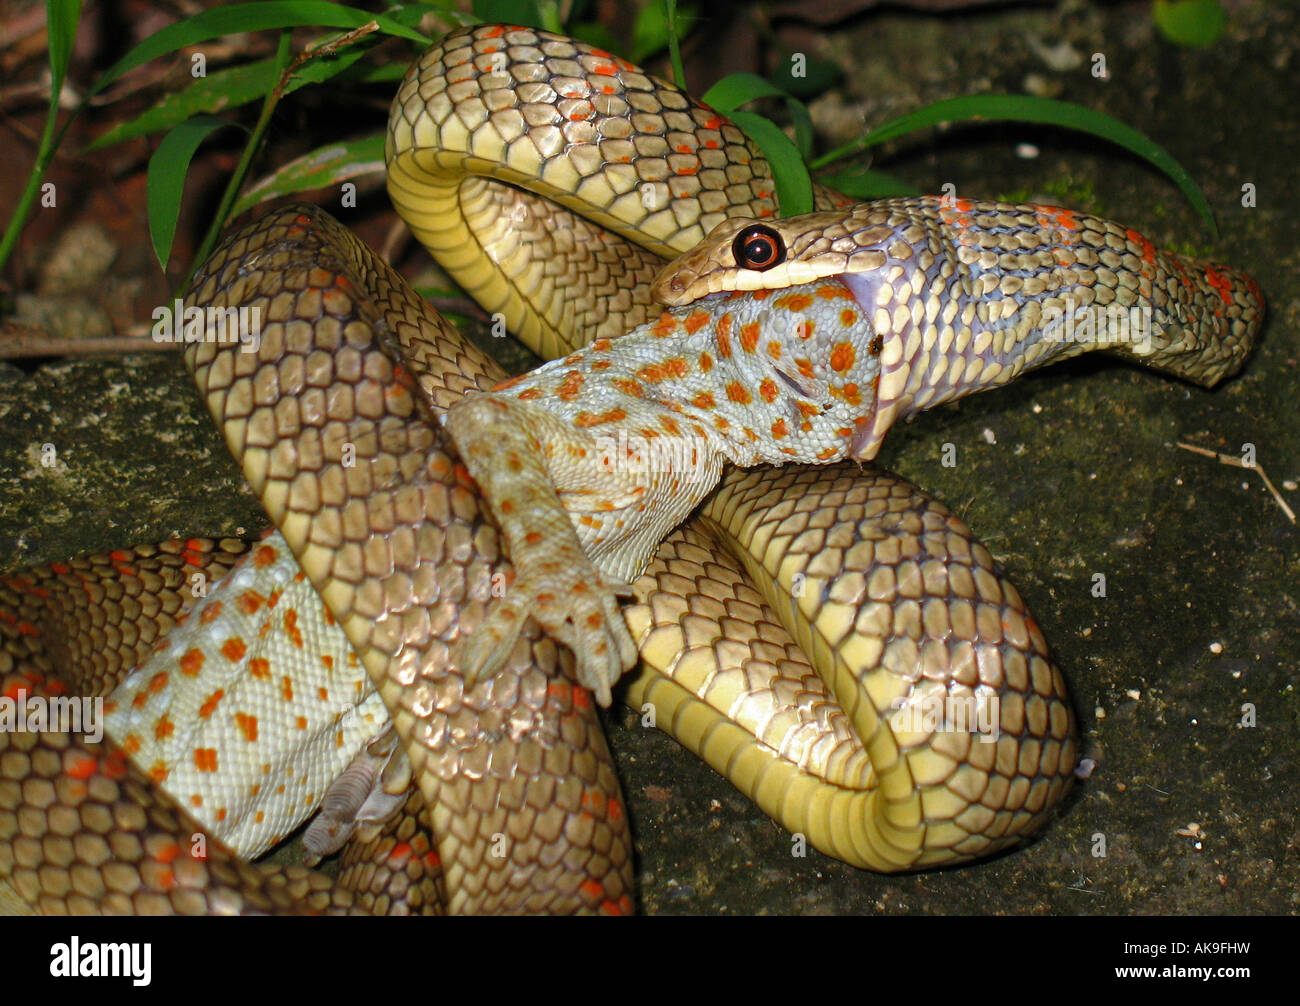 Paradise Flying Tree Snake Eating A Tokay Gecko Lizard